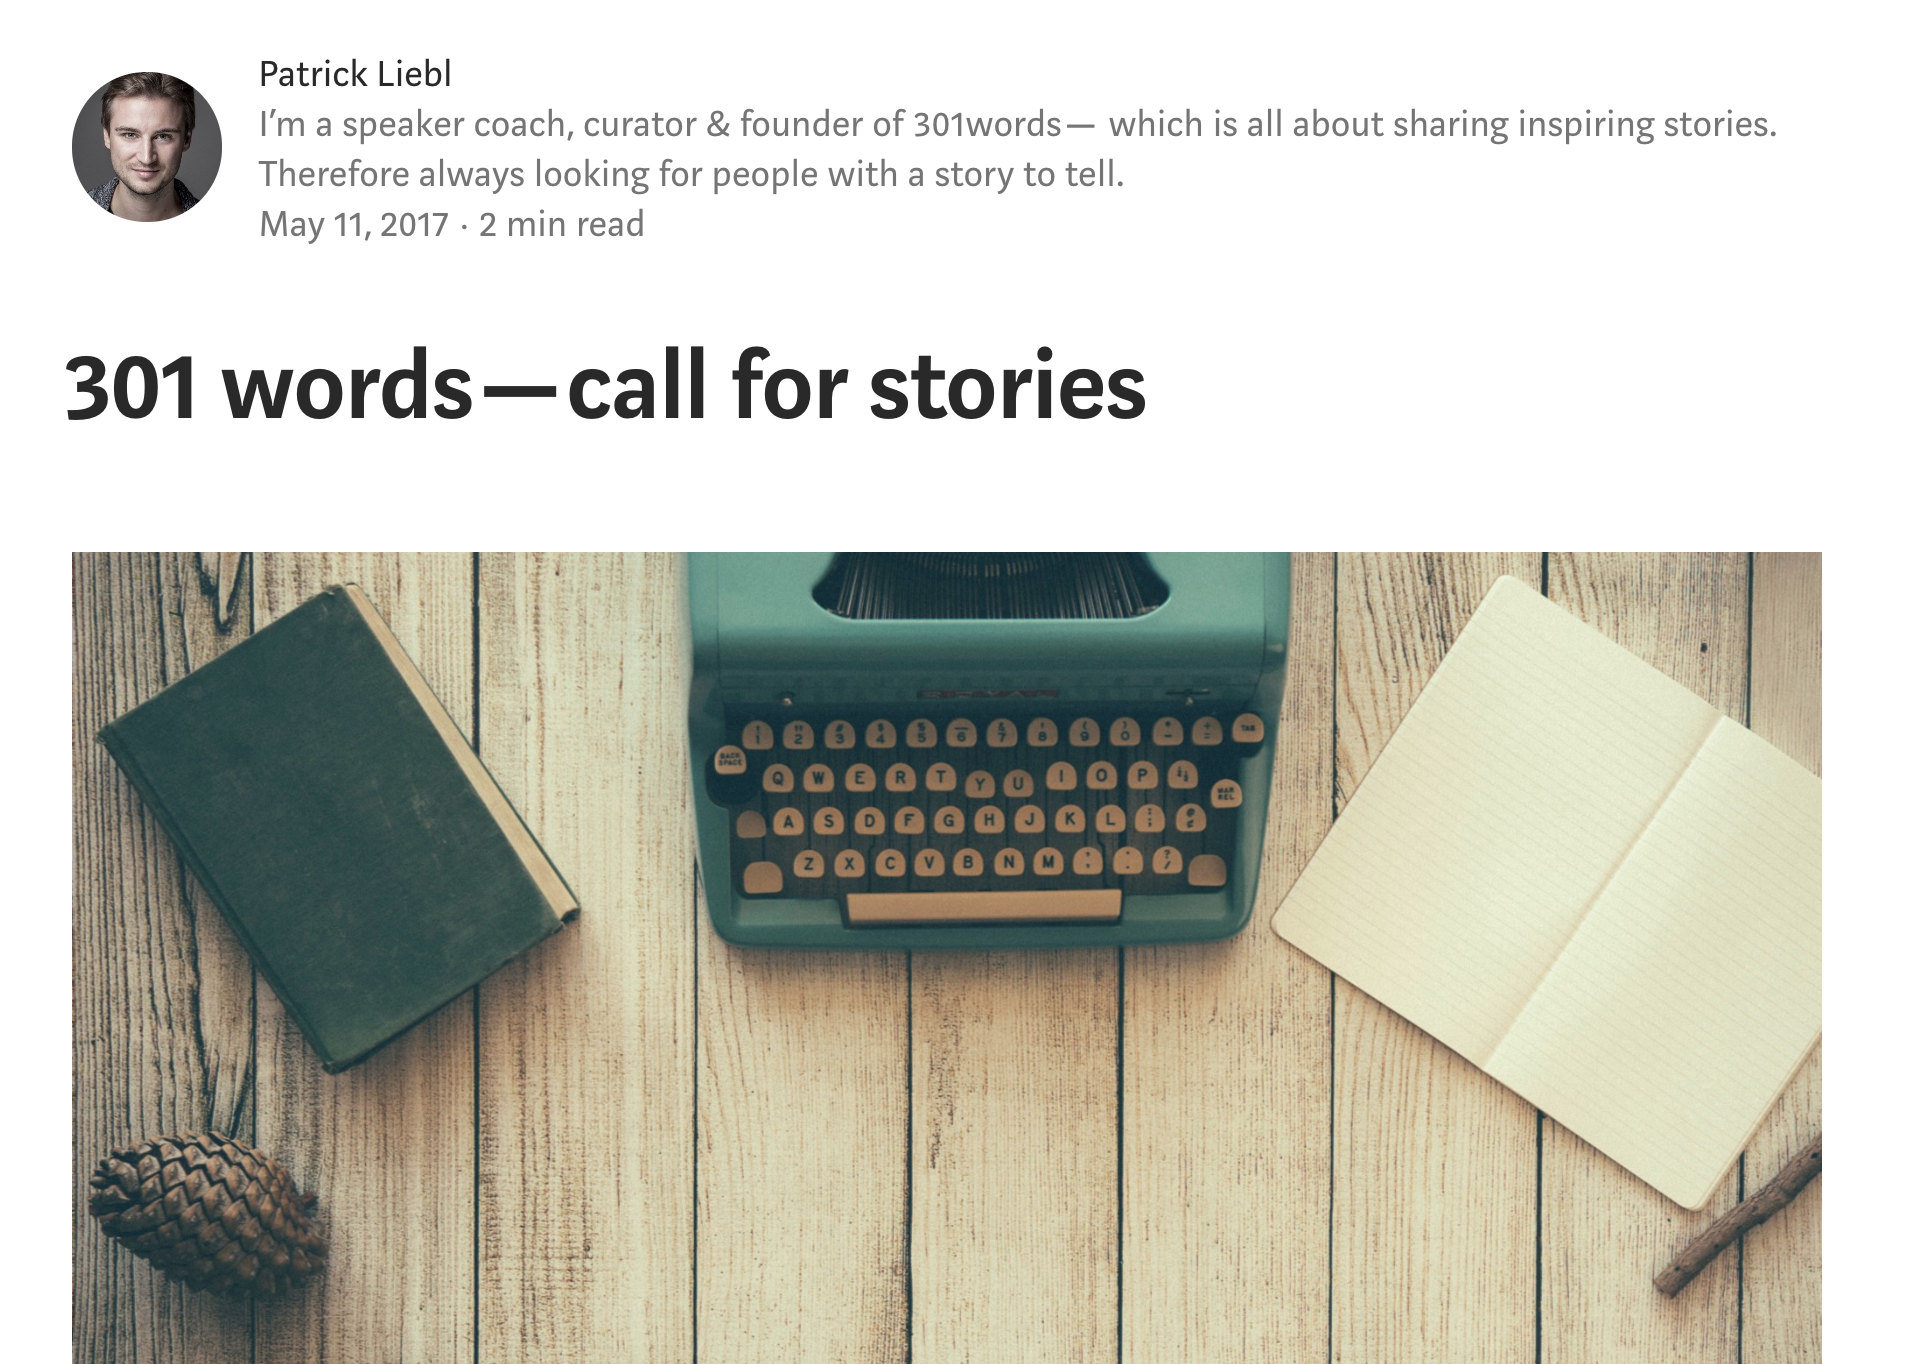 301-words-call-for-stories_Patrick-Liebl.png